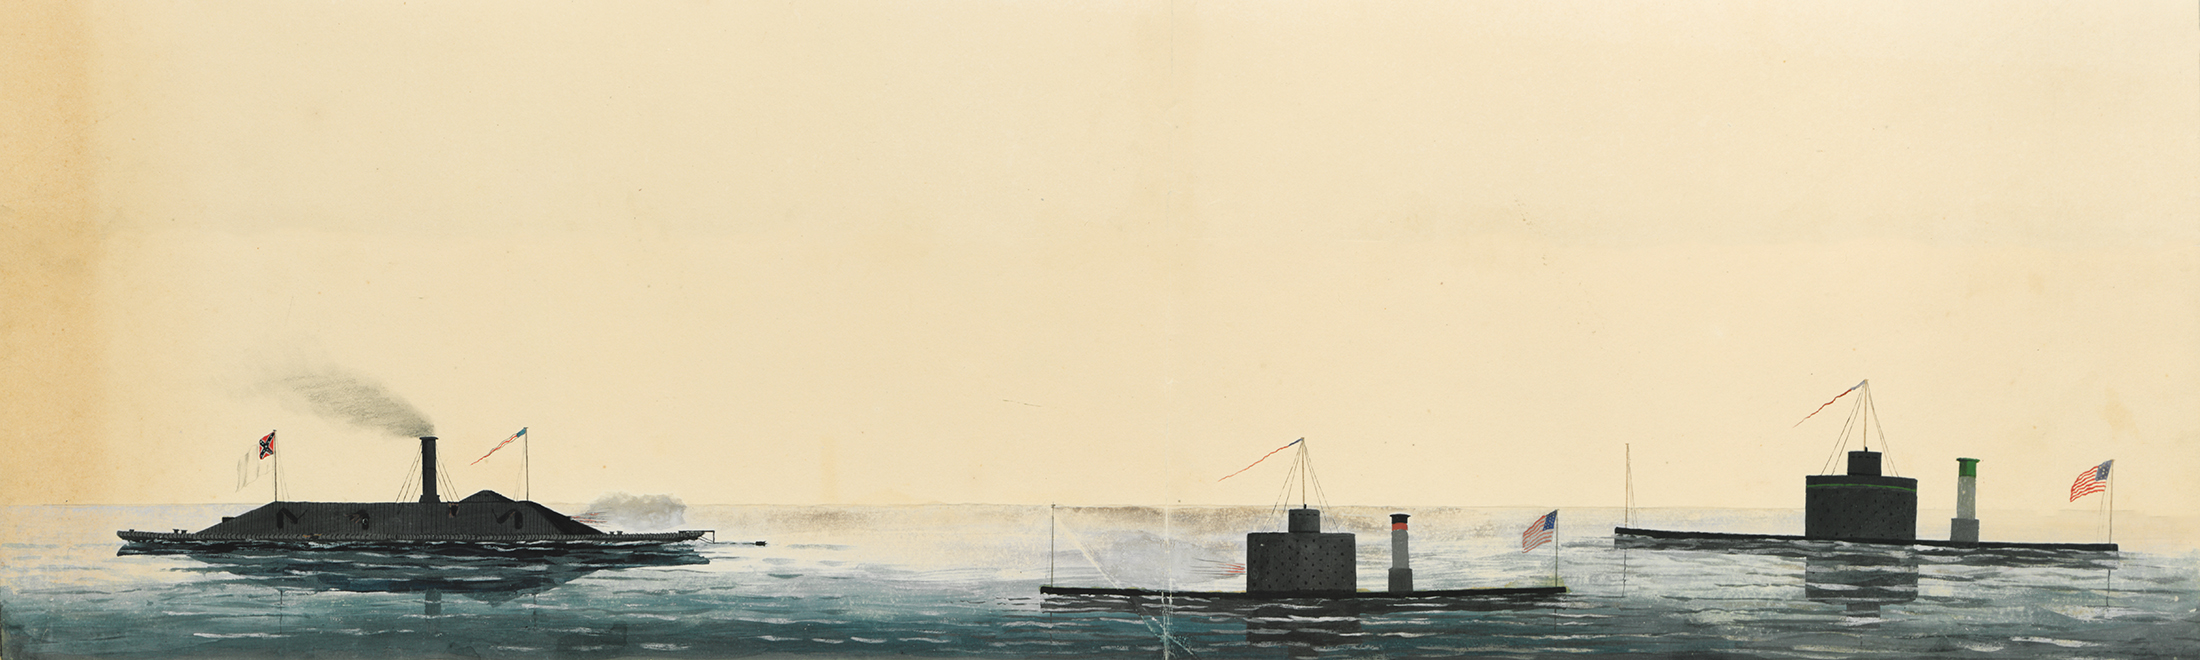 Civil War naval art of ironclad ships during an engagement by Xanthus Smith